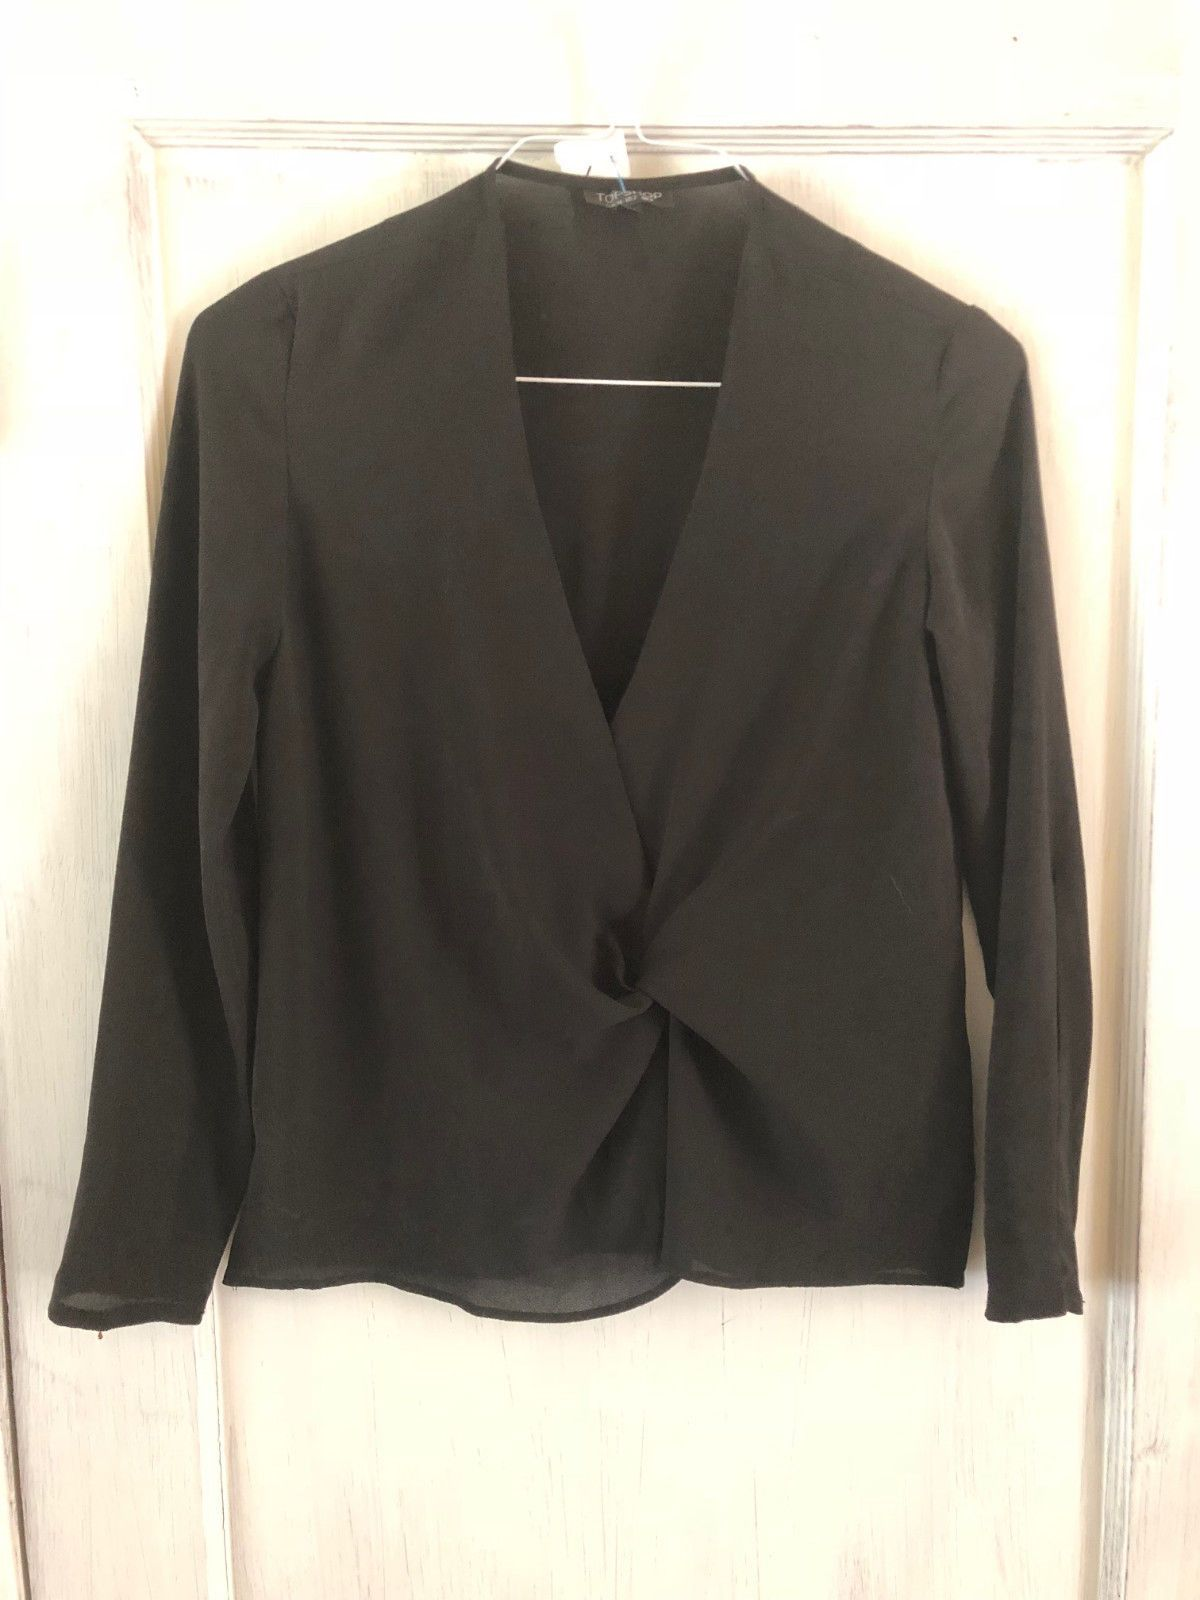 14.99 USD | Pre-Owned TopShop Woman's Long Sleeve Twist Top Black Size 2 |  #topshop #womans #sleeve #shop #menclothes #Shorts #ASOS #Aesthetic #Preppy  #90s ...